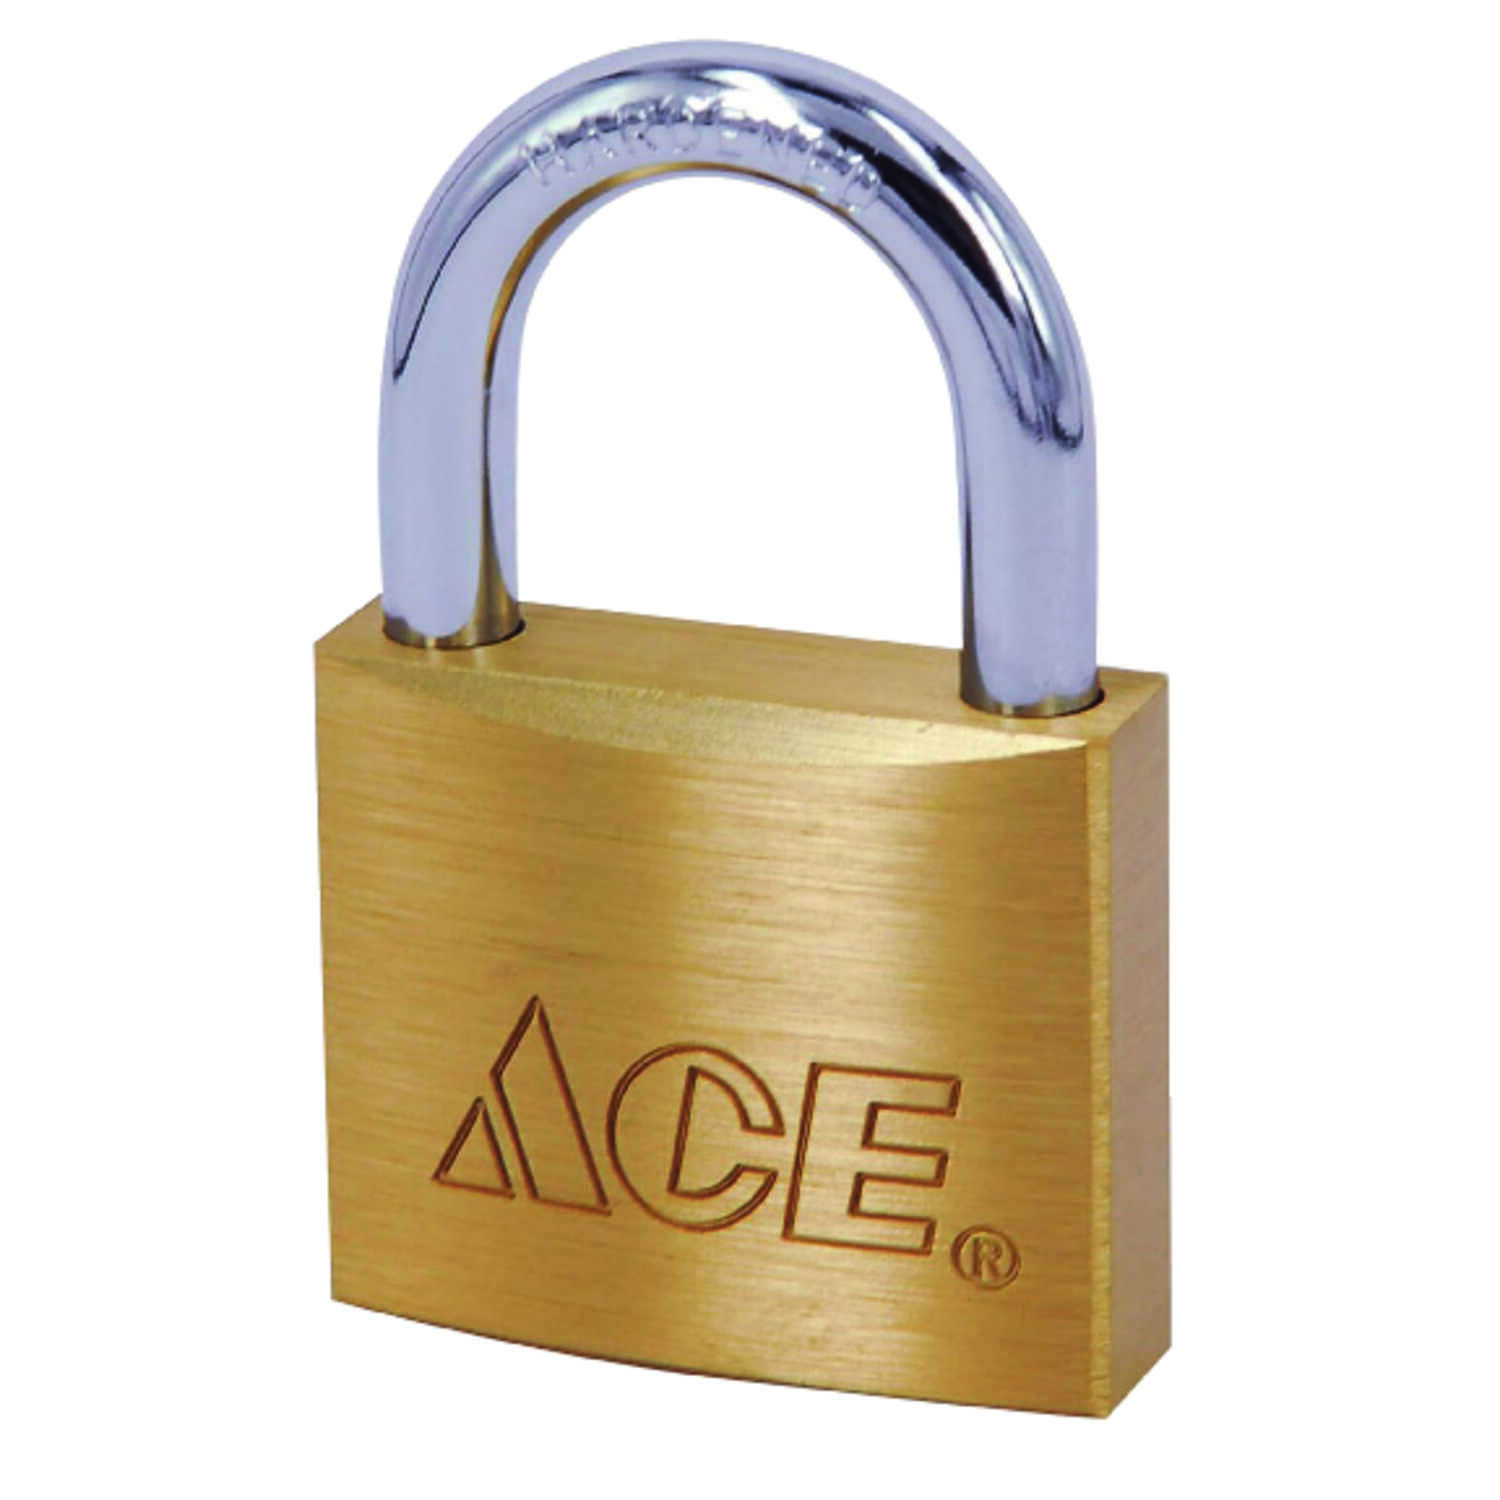 Ace  1-7/16 in. H x 1-7/8 in. W x 9/16 in. L Brass  Double Locking  Padlock  1 pk Keyed Alike